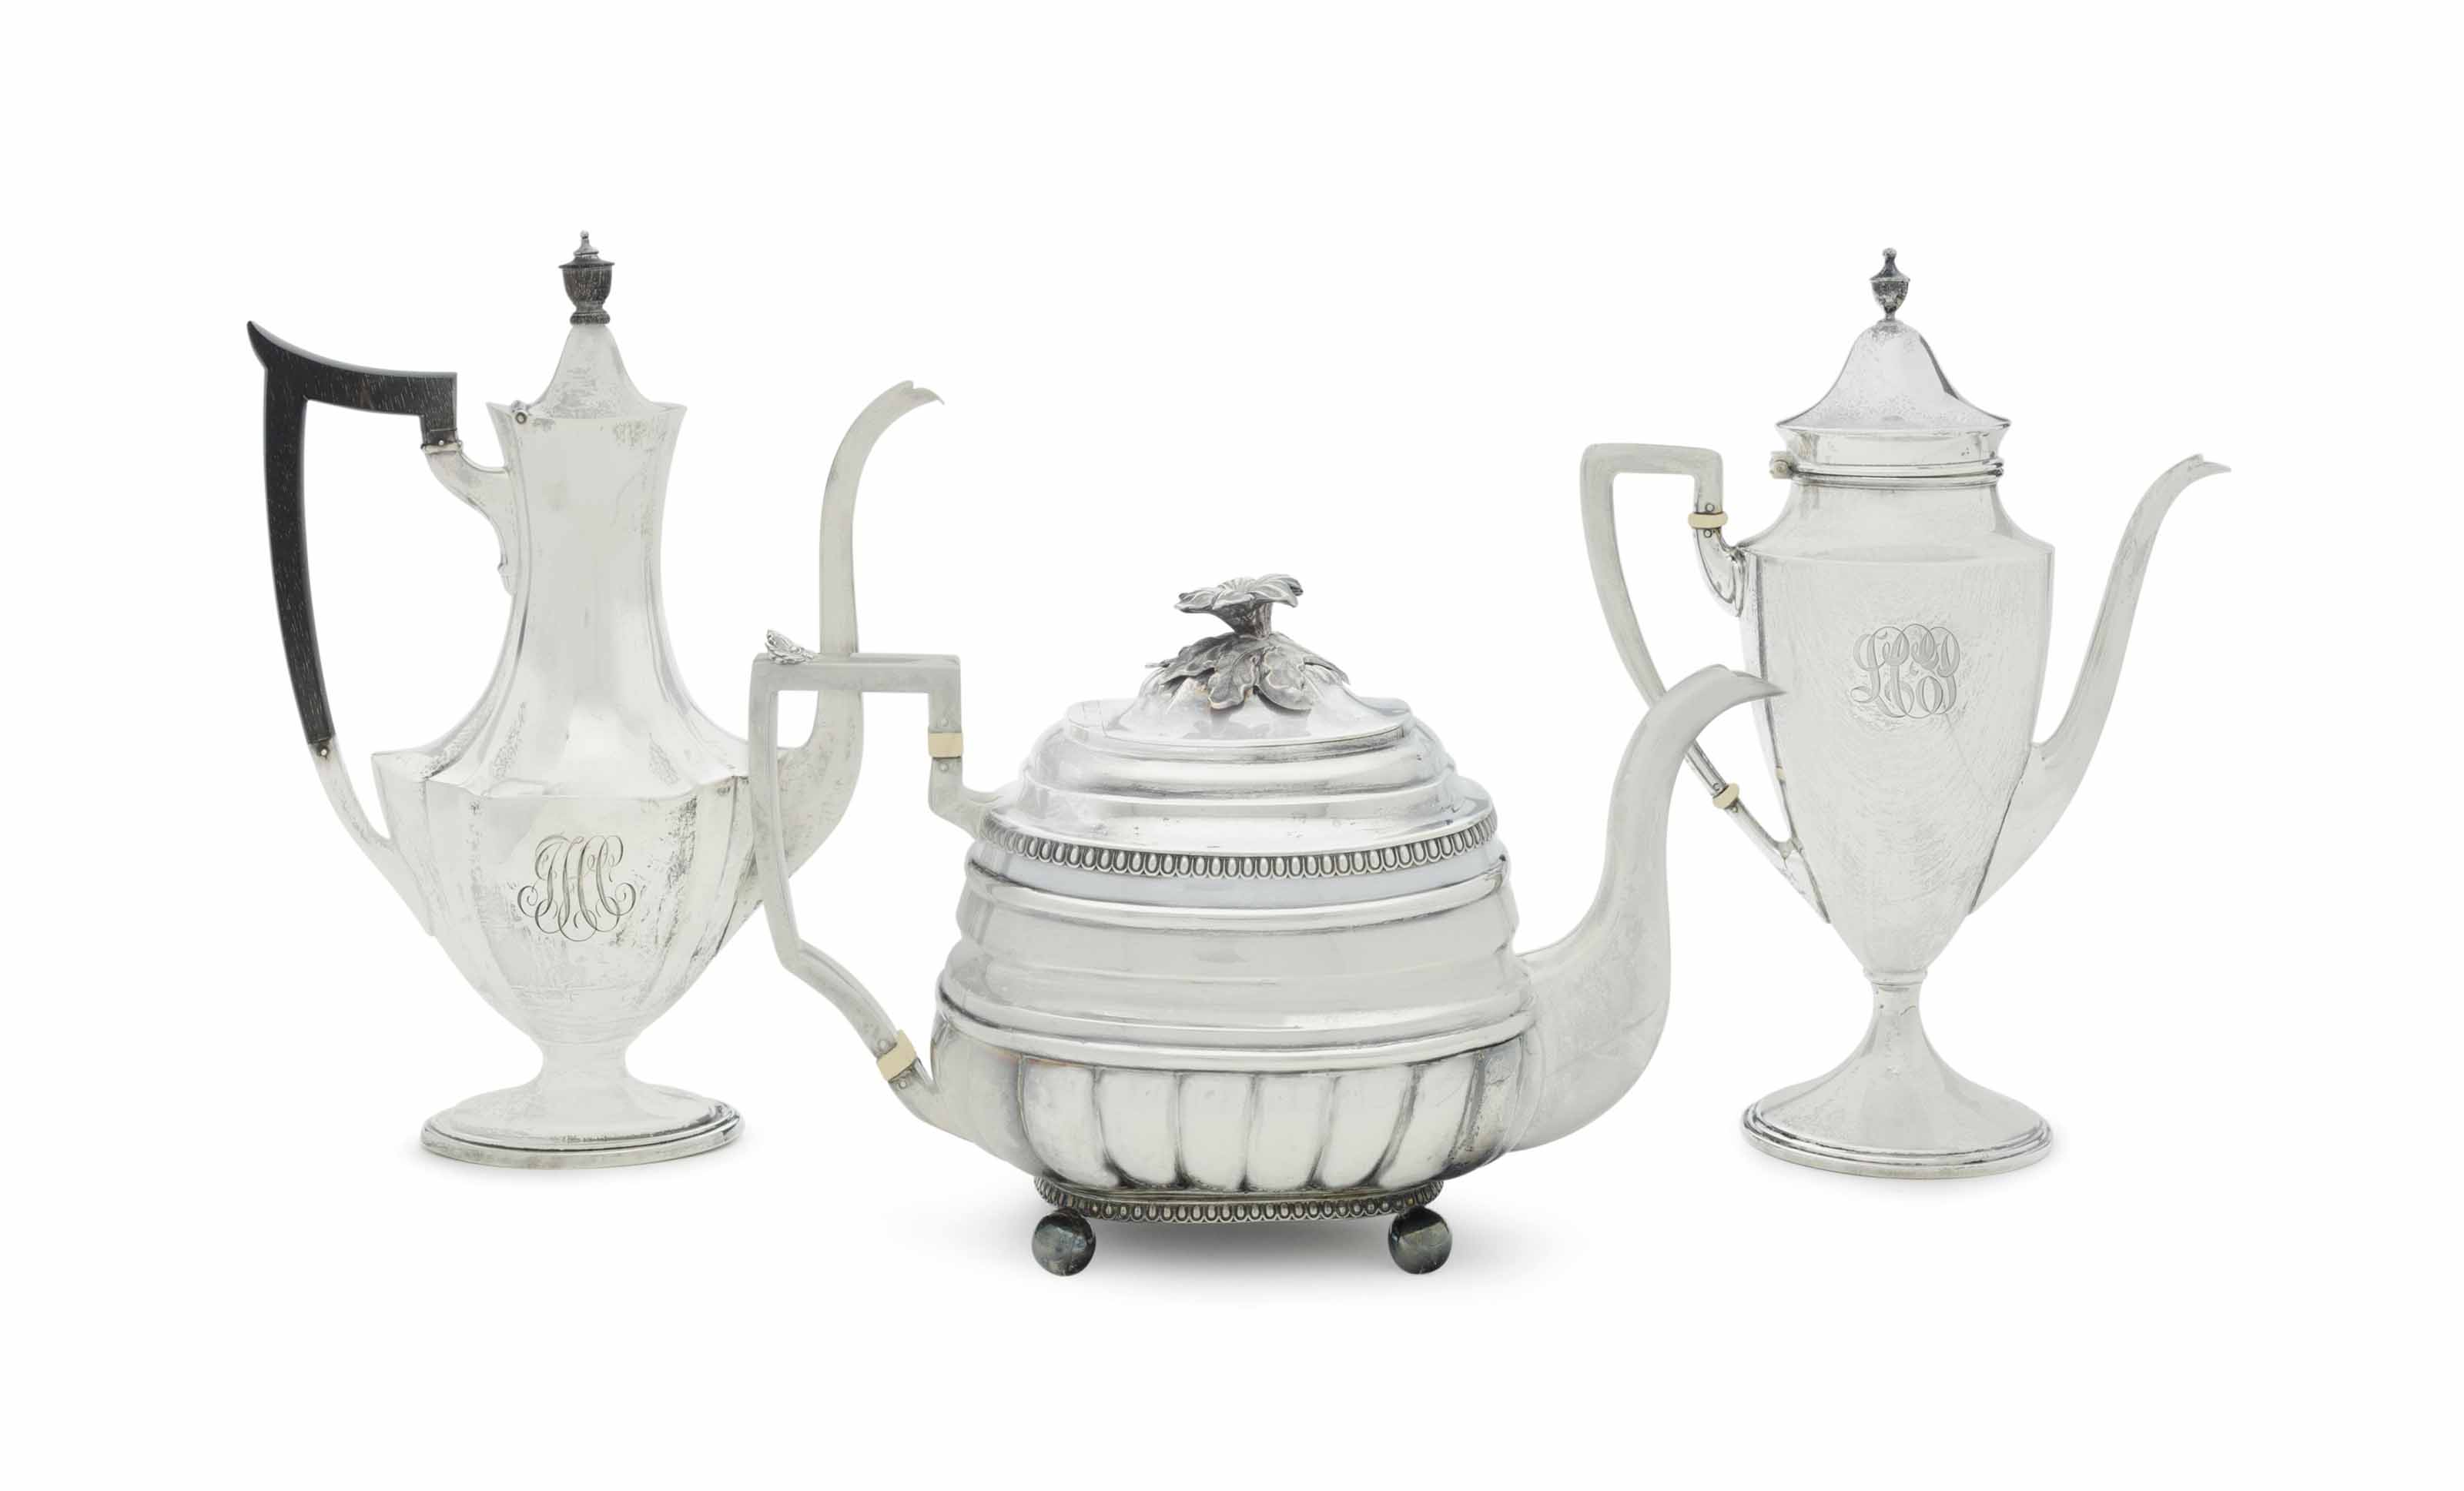 A SCOTTISH SILVER TEAPOT, AND TWO AMERICAN SILVER COFFEE POTS